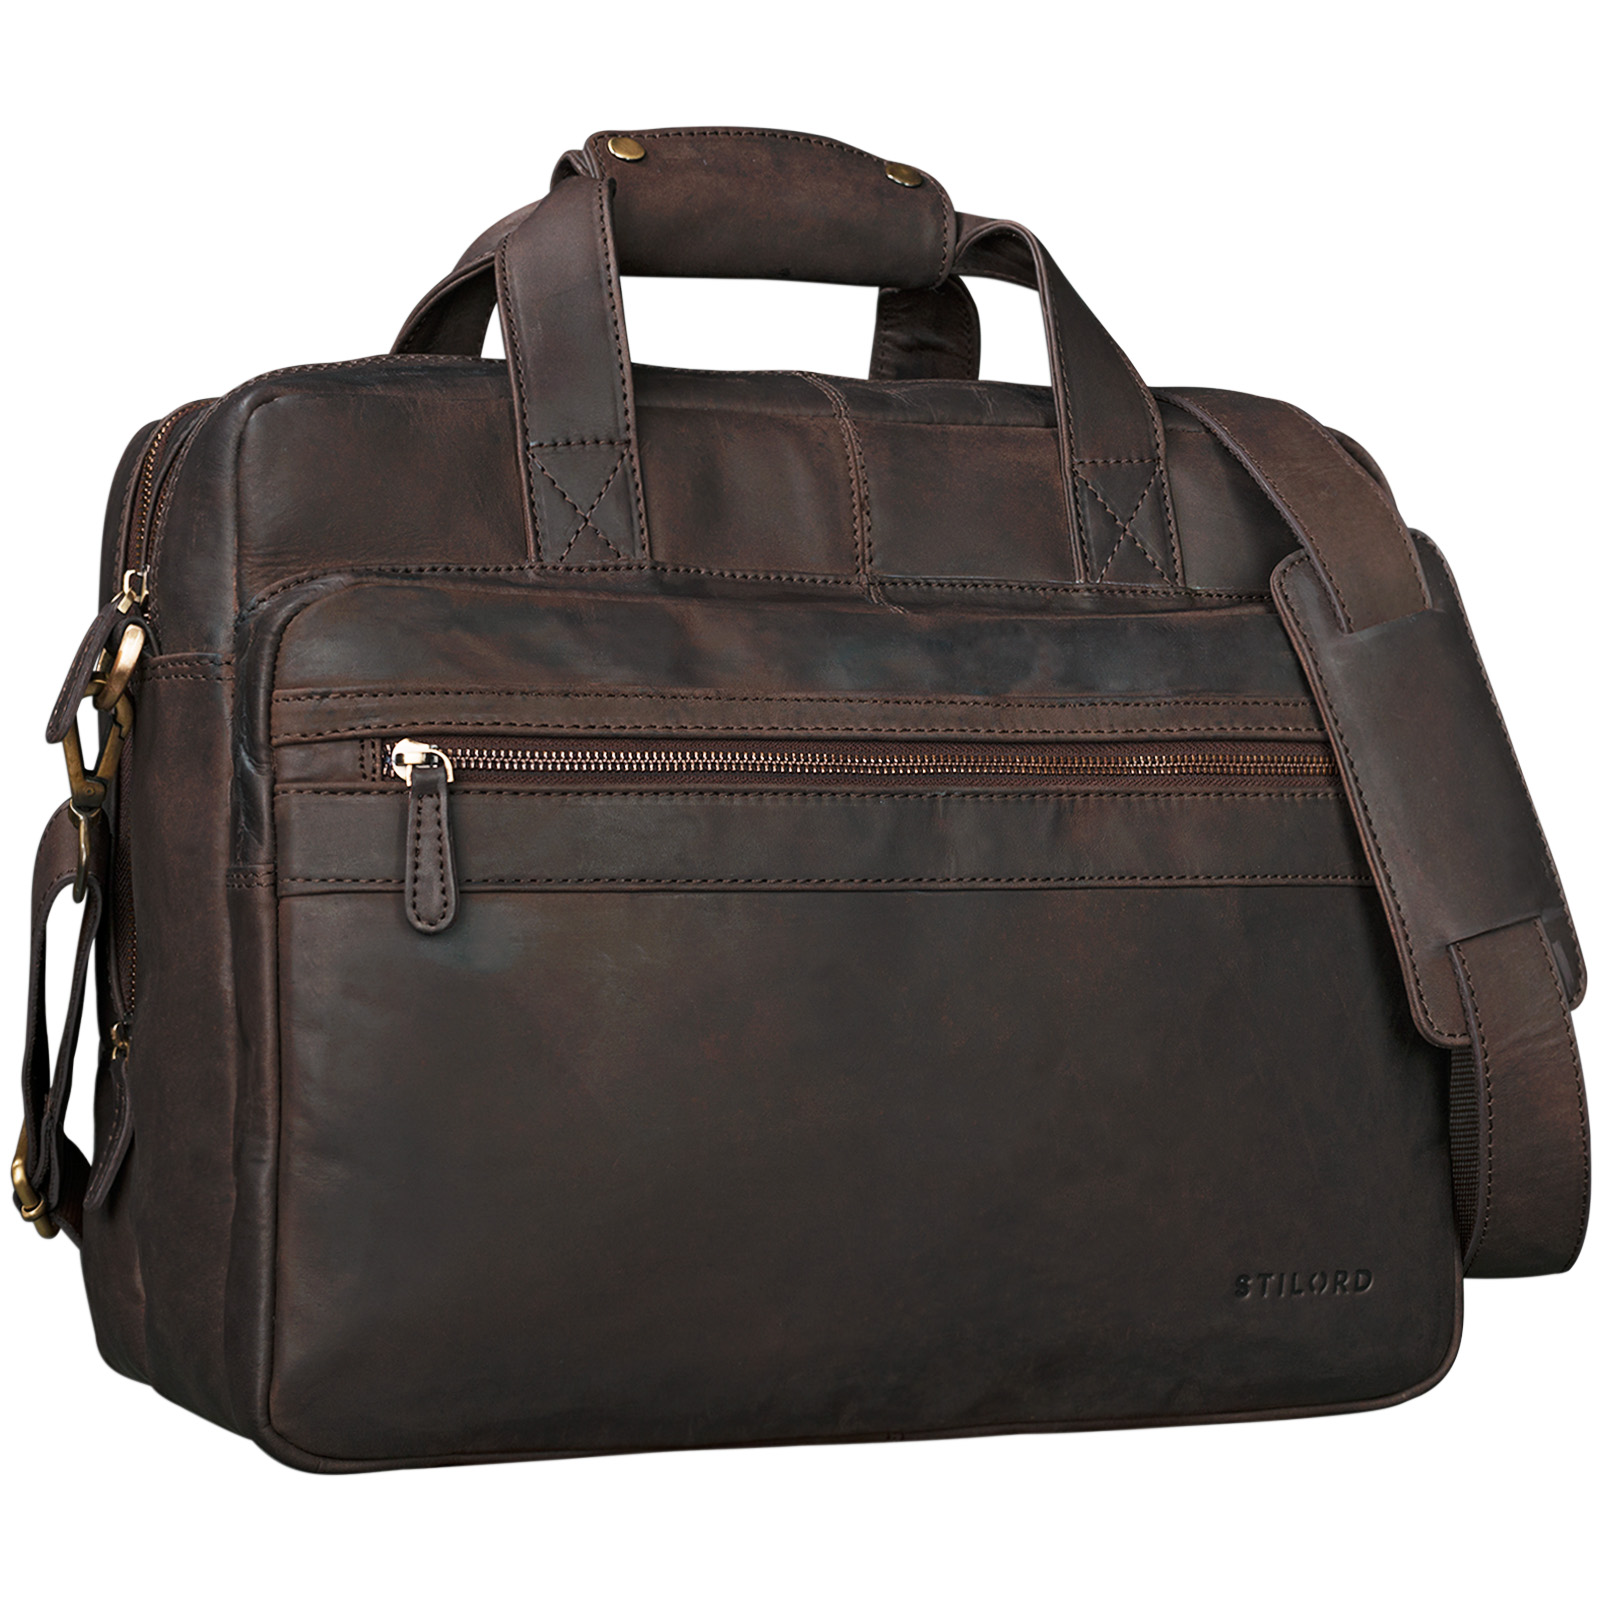 "STILORD ""Adventure"" Lehrertasche Herren Damen Aktentasche Office Büro Schulter- oder Umhängetasche Businesstasche für Laptop Leder  - Bild 6"